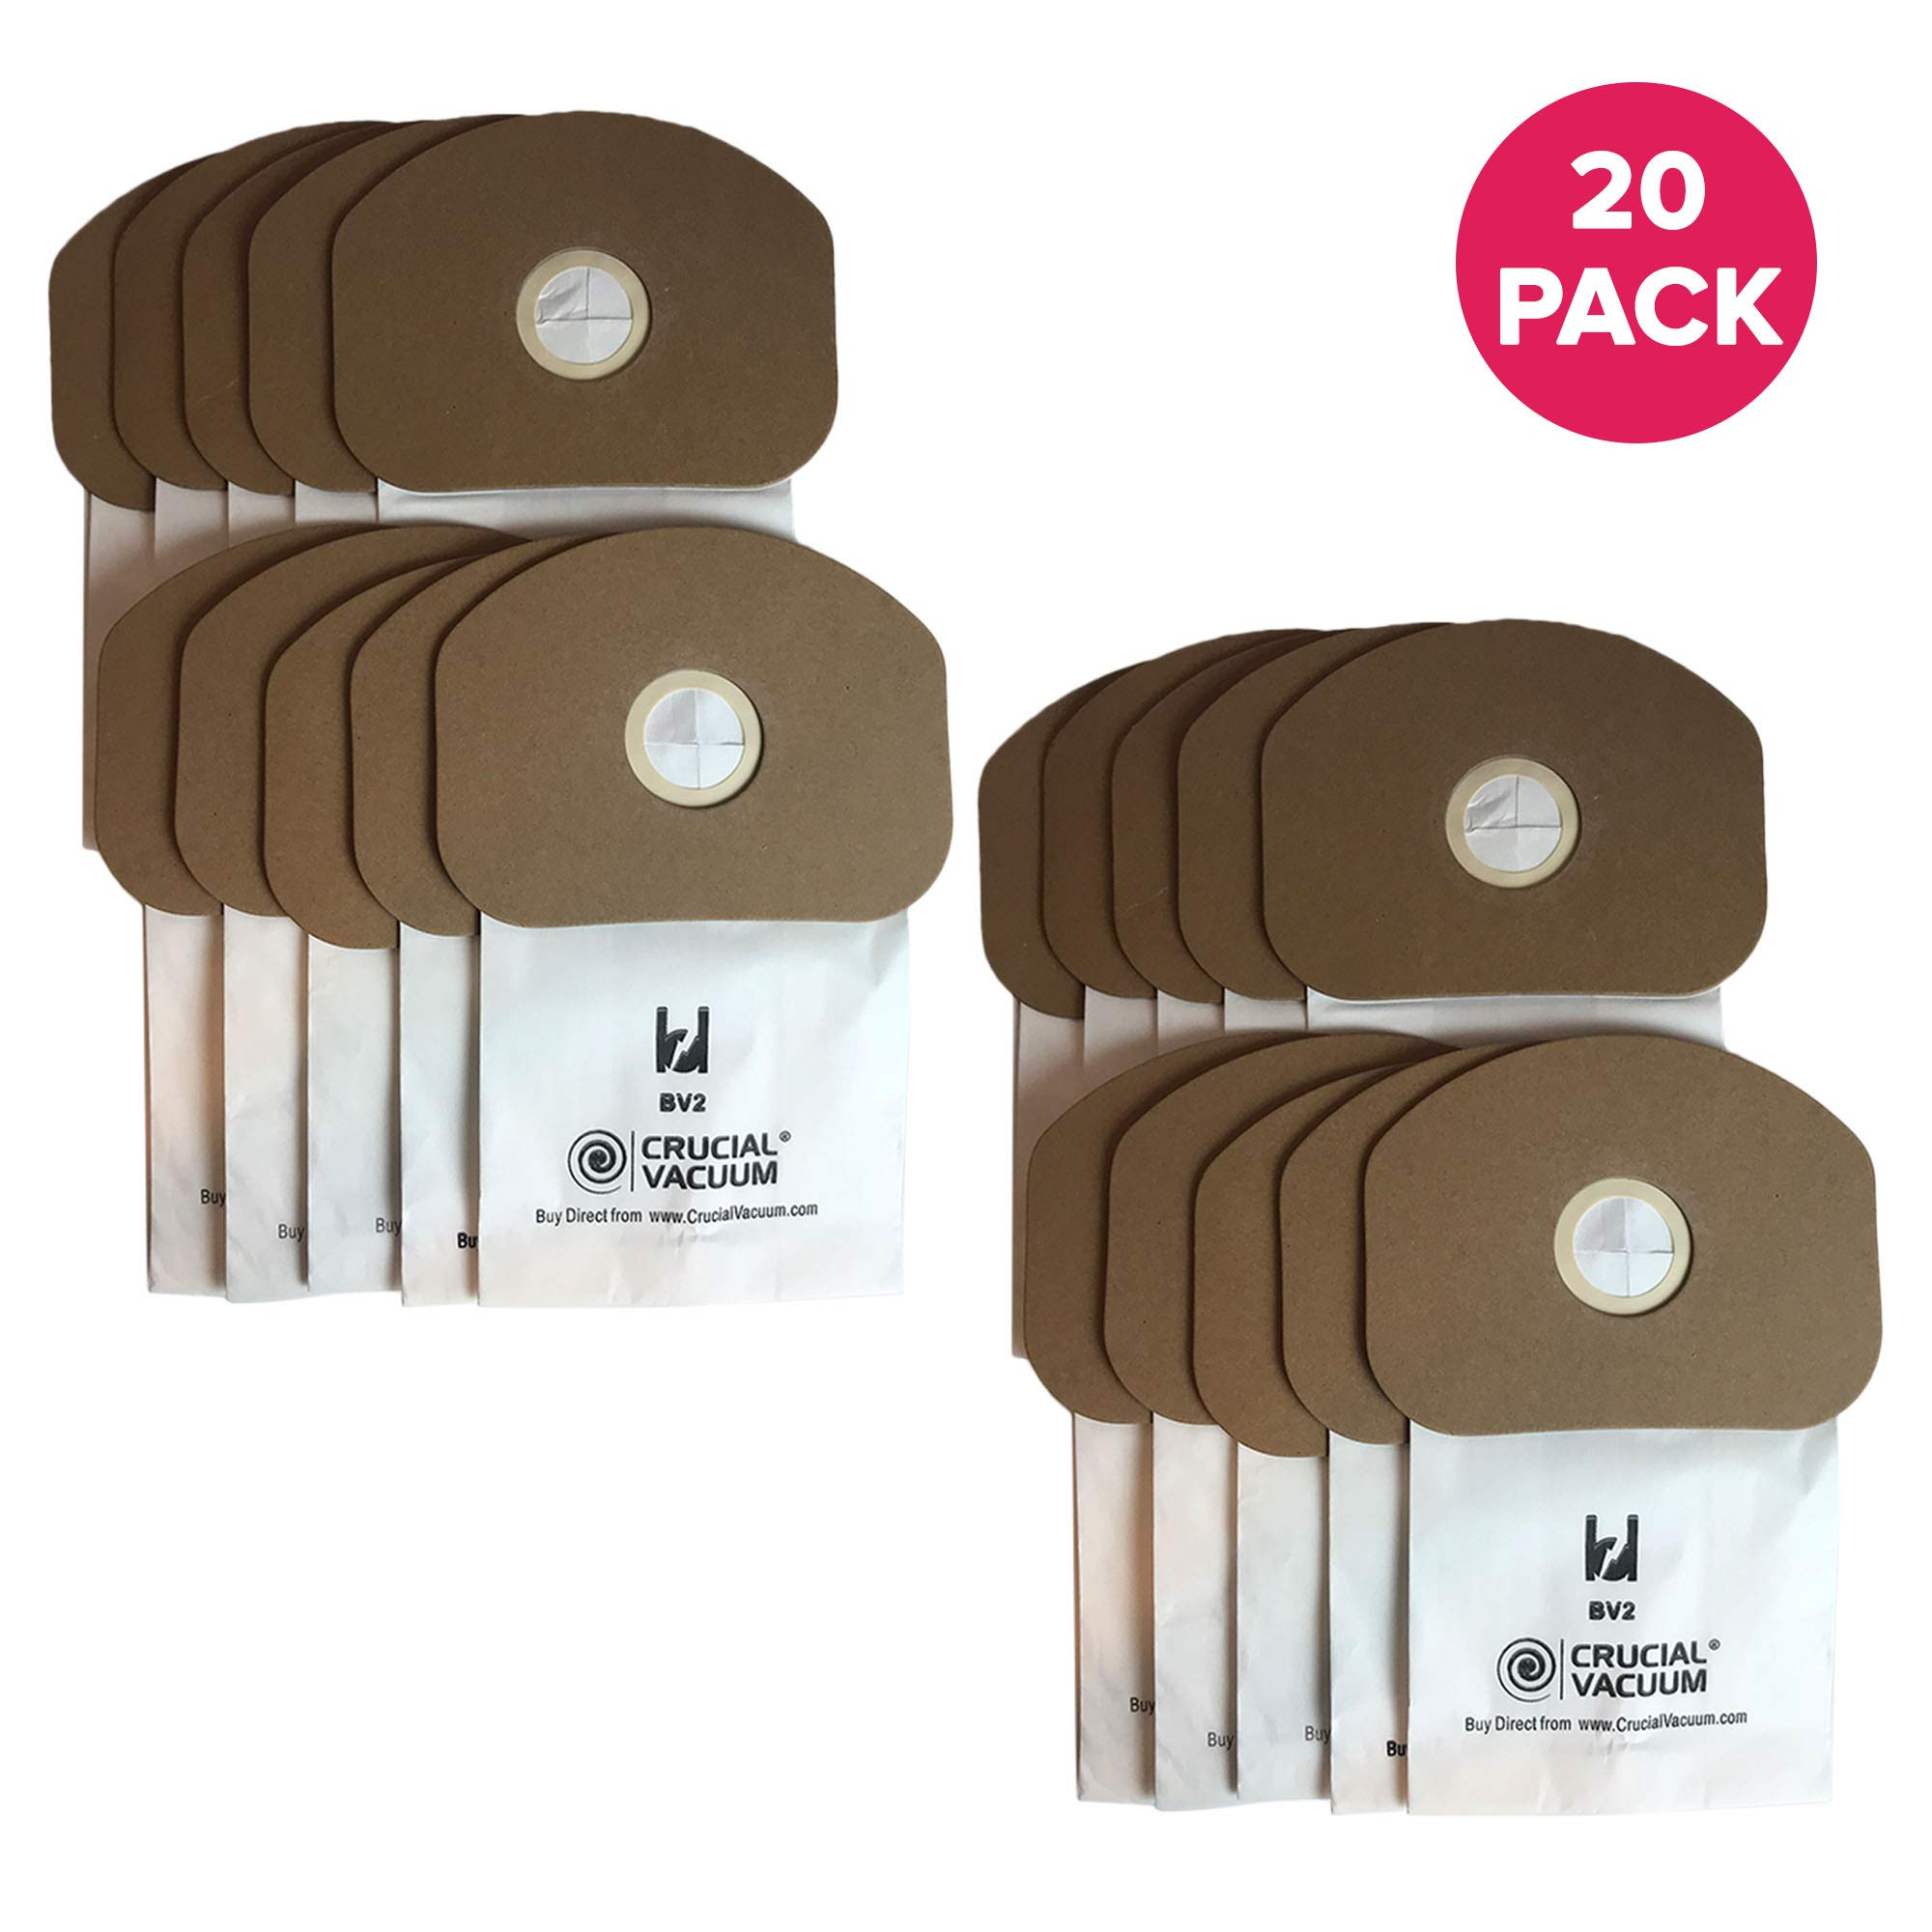 Crucial Vacuum Replacement Vac Bags Part # 62370, B352-2500 - Compatible with Nutone Vacs, Models SC412 - Vacs, Vacuums Bag Measures 11.2'' X 7.7'' X 2.8'' - Bulk Packs for Home, Office - (20 Pack)